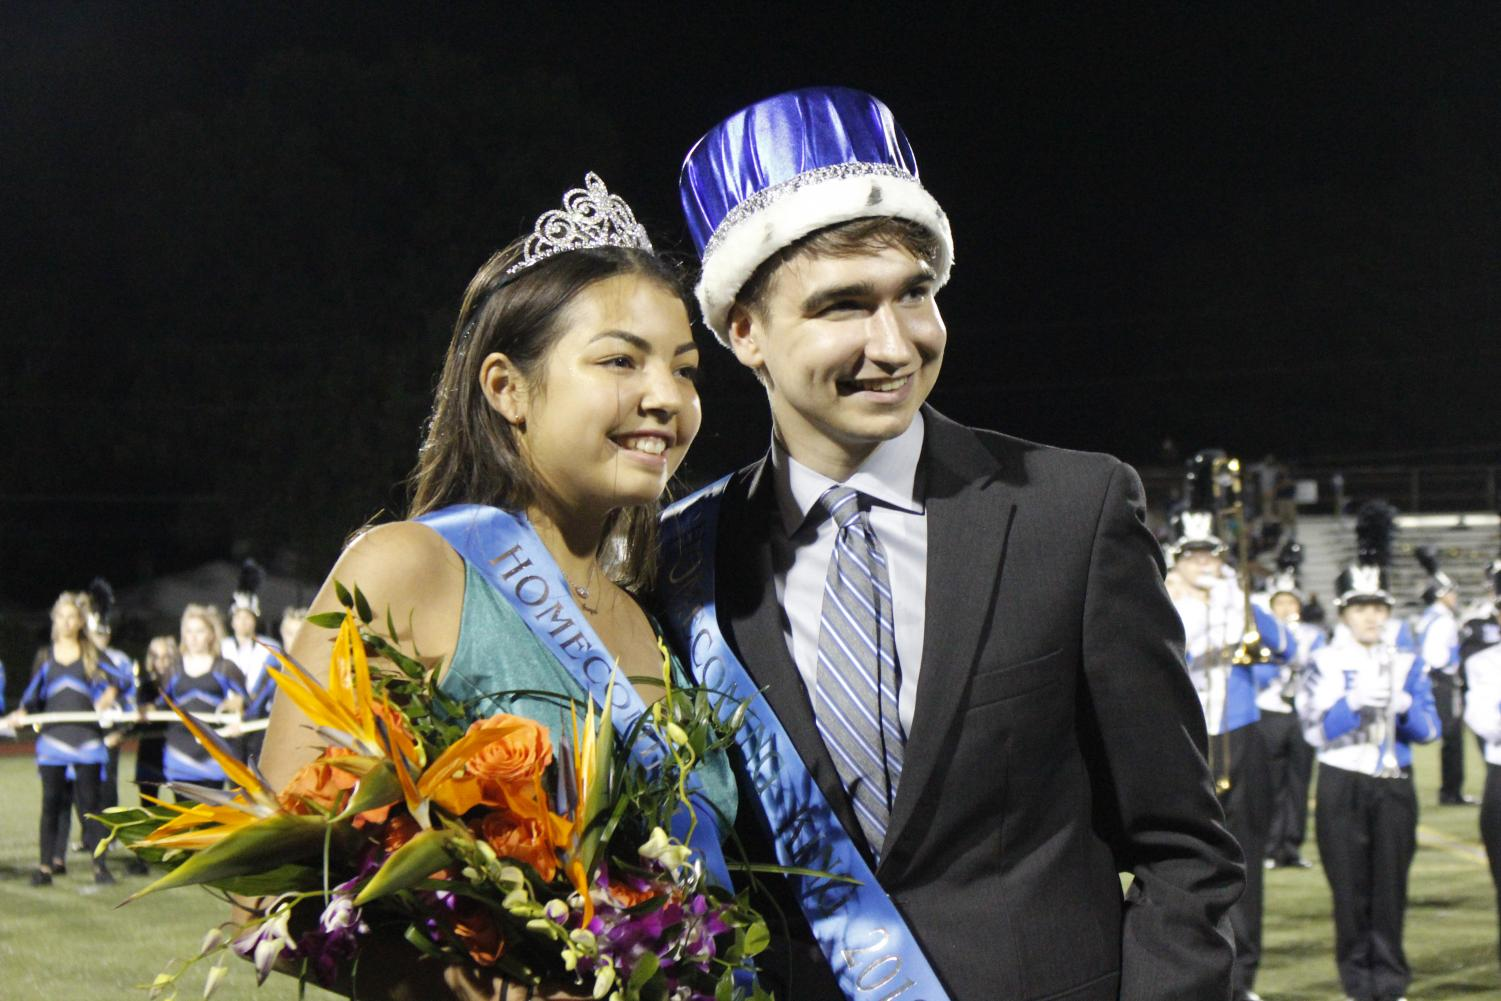 Homecoming king and queen Iain Robb and Carina Hanna pose for photos at the homecoming football game.